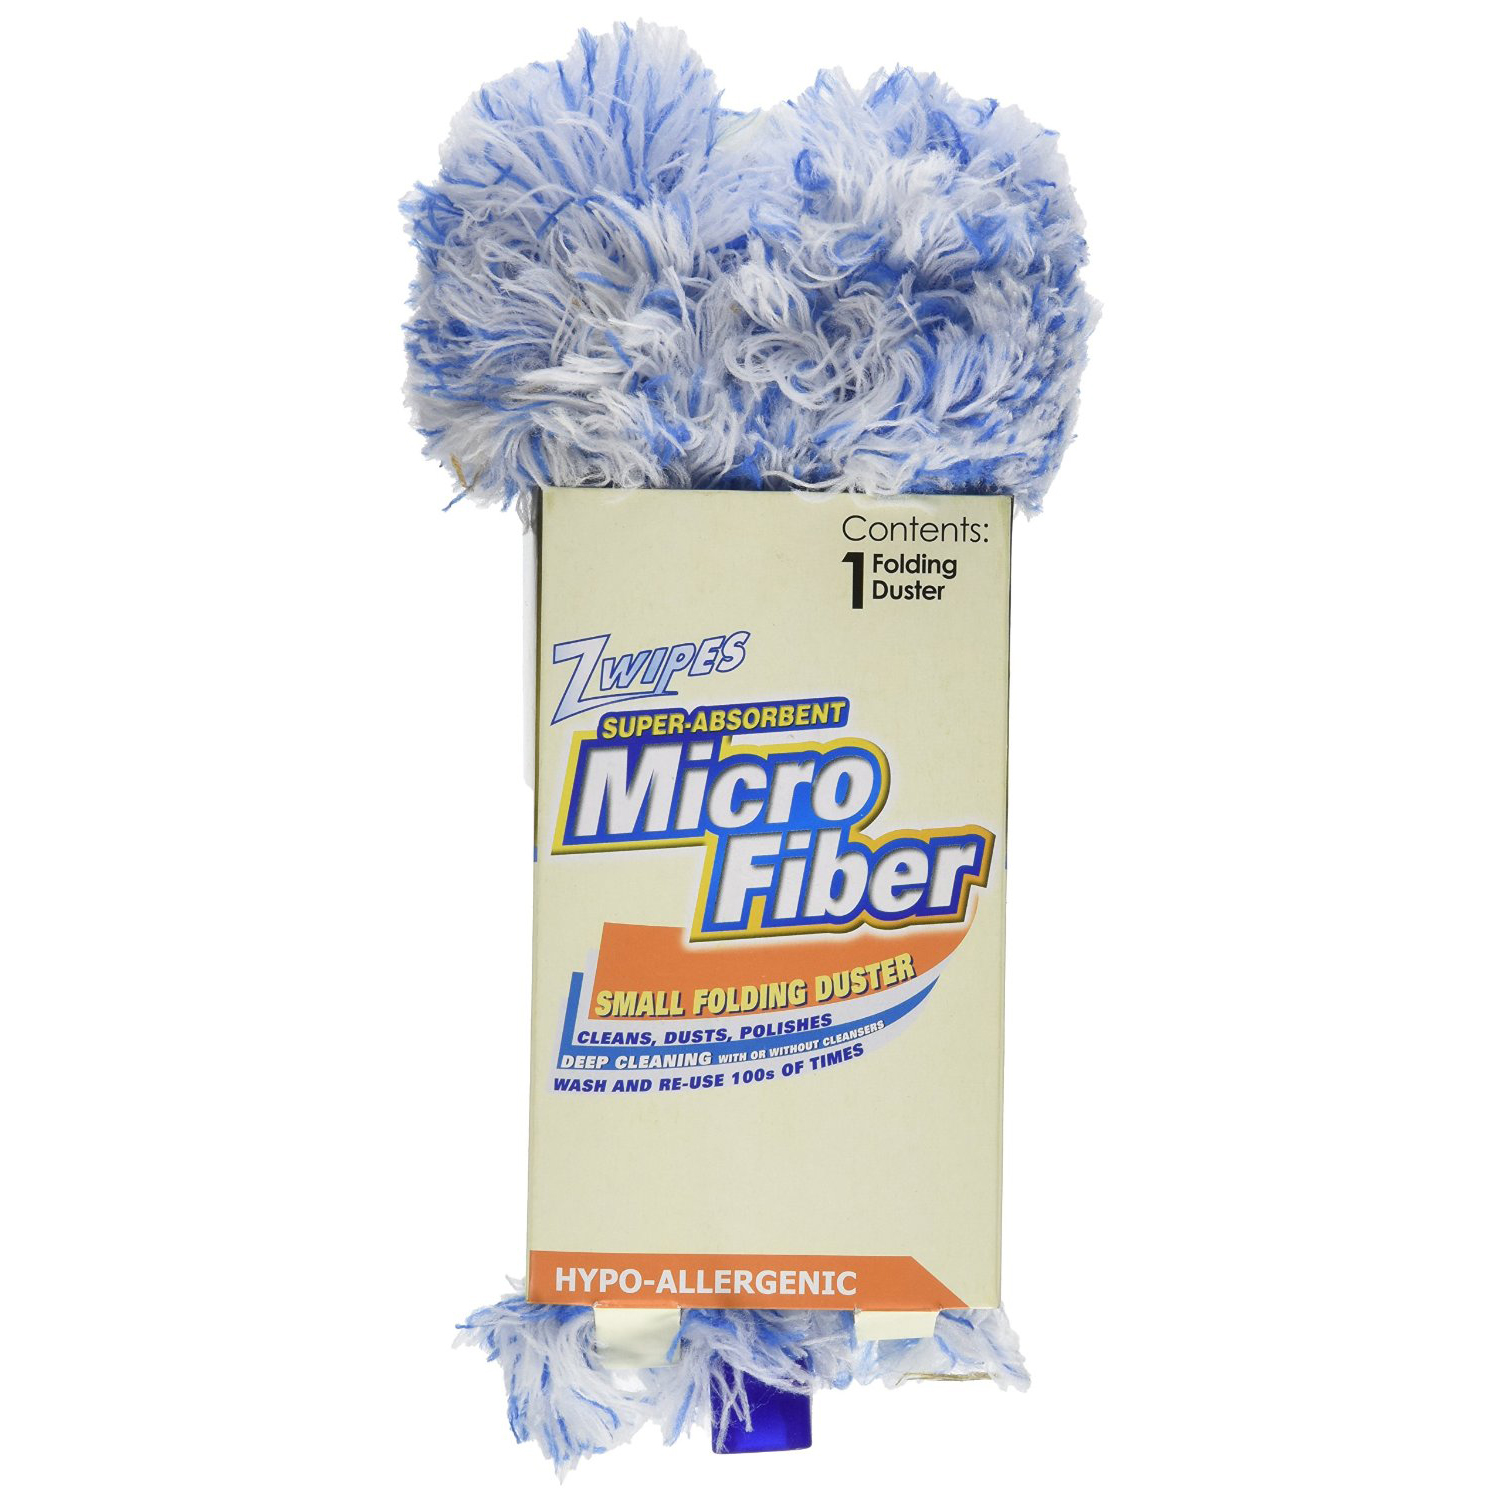 Zwipes Small Folding Microfiber Duster